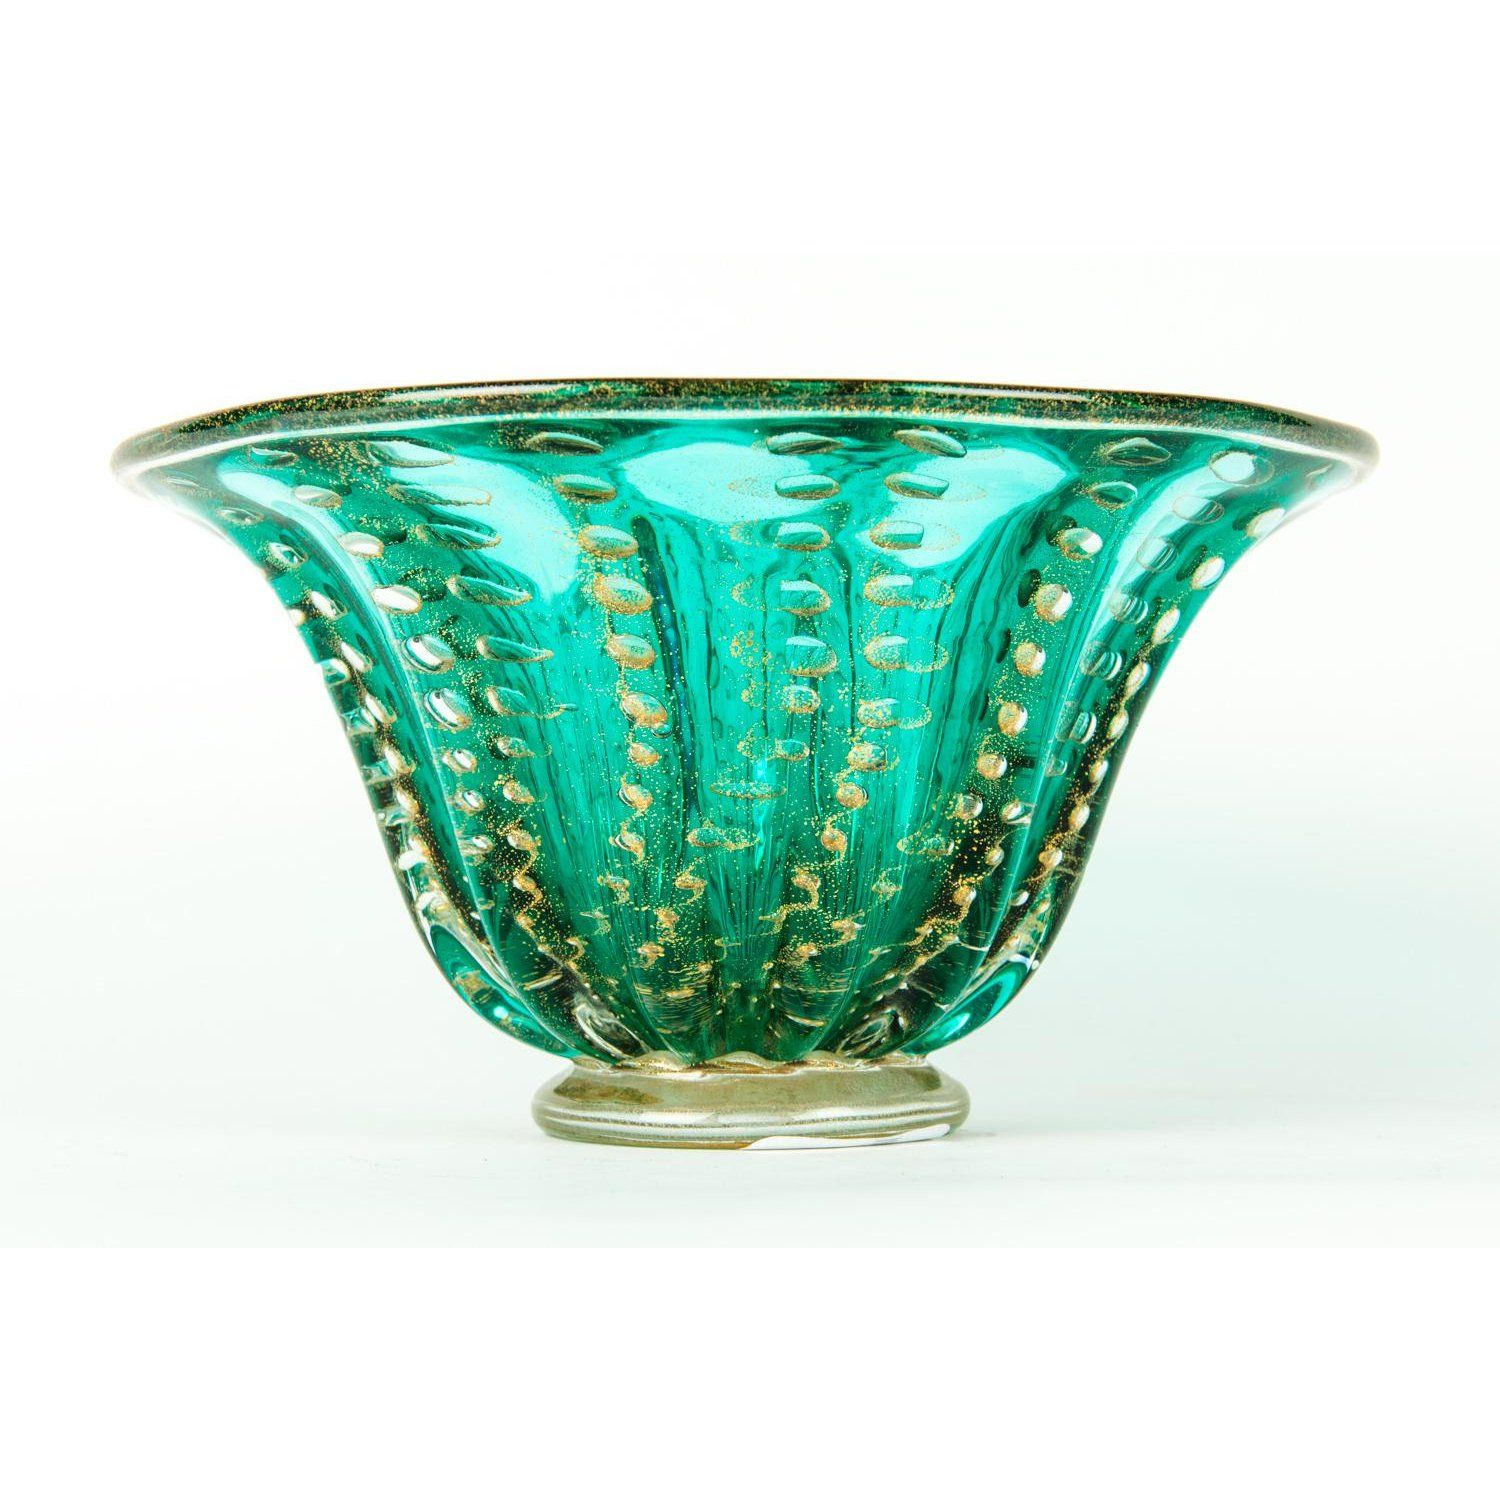 Midcentury Murano Glass Decorative Piece Bowl Image 2 Of 6 Mid